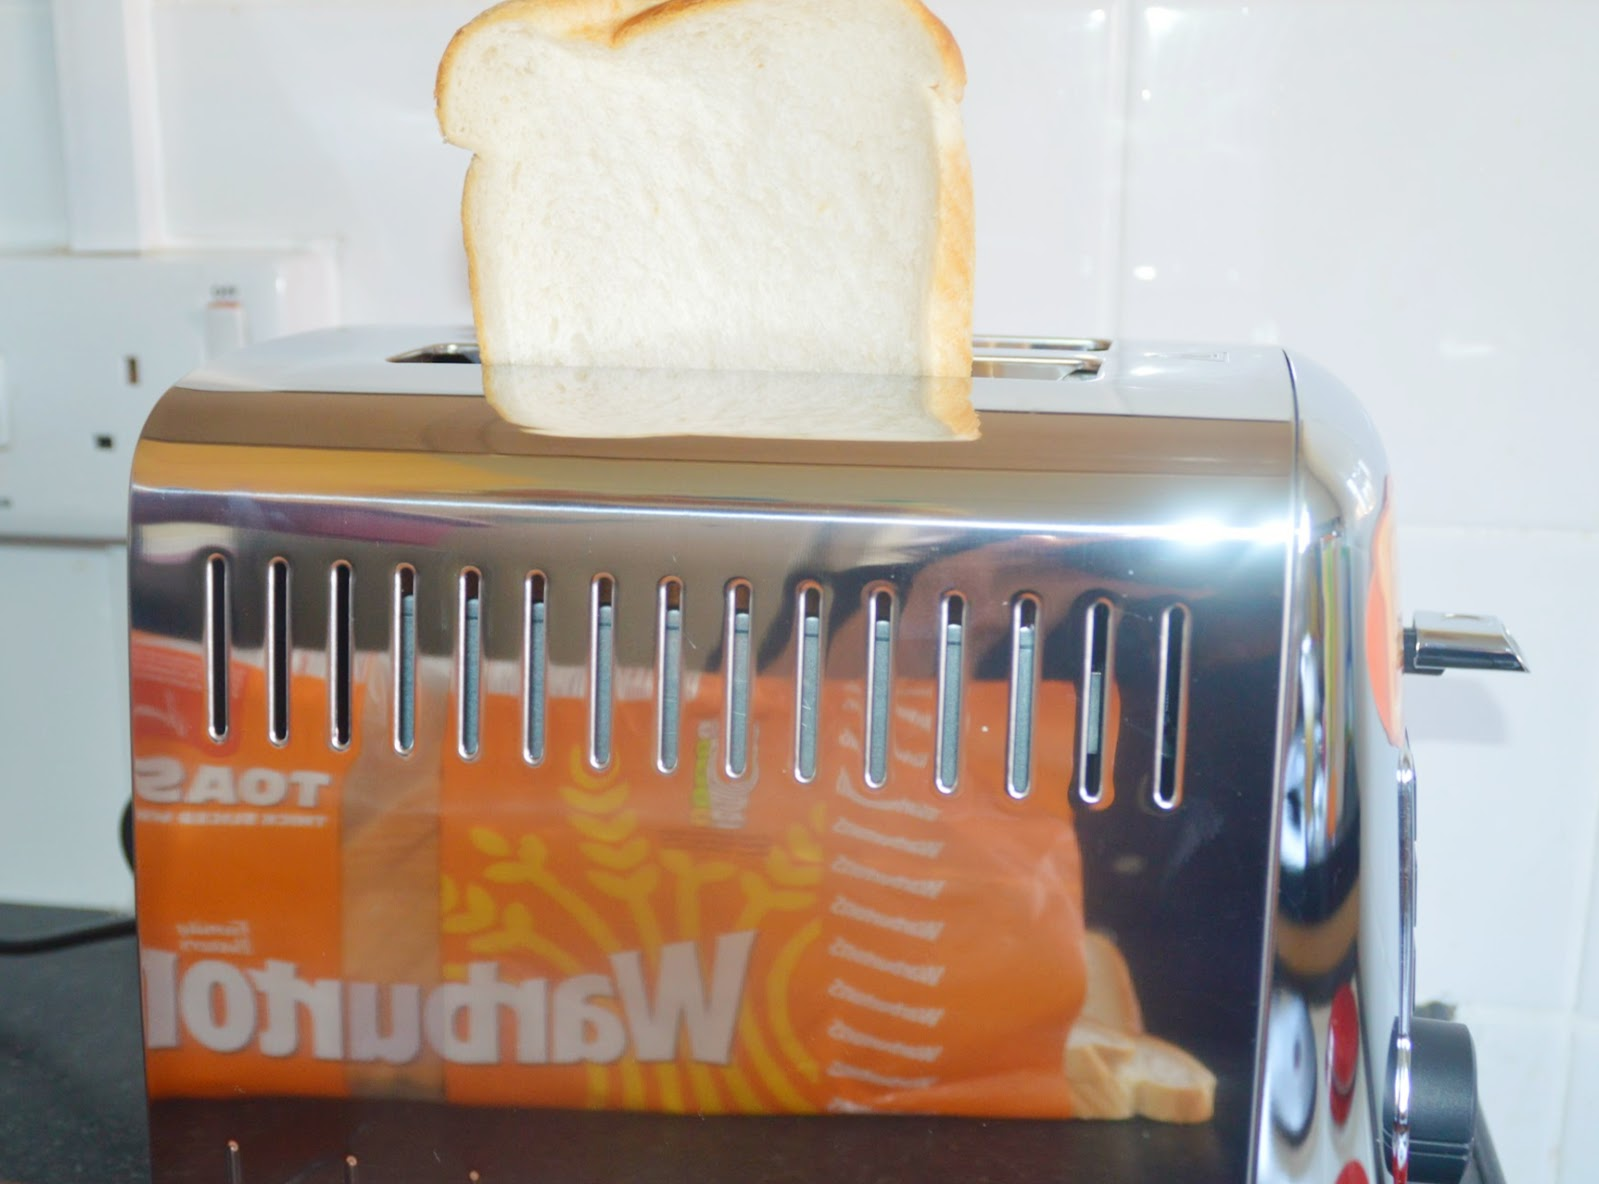 , Breville:  Top Of the Toasters